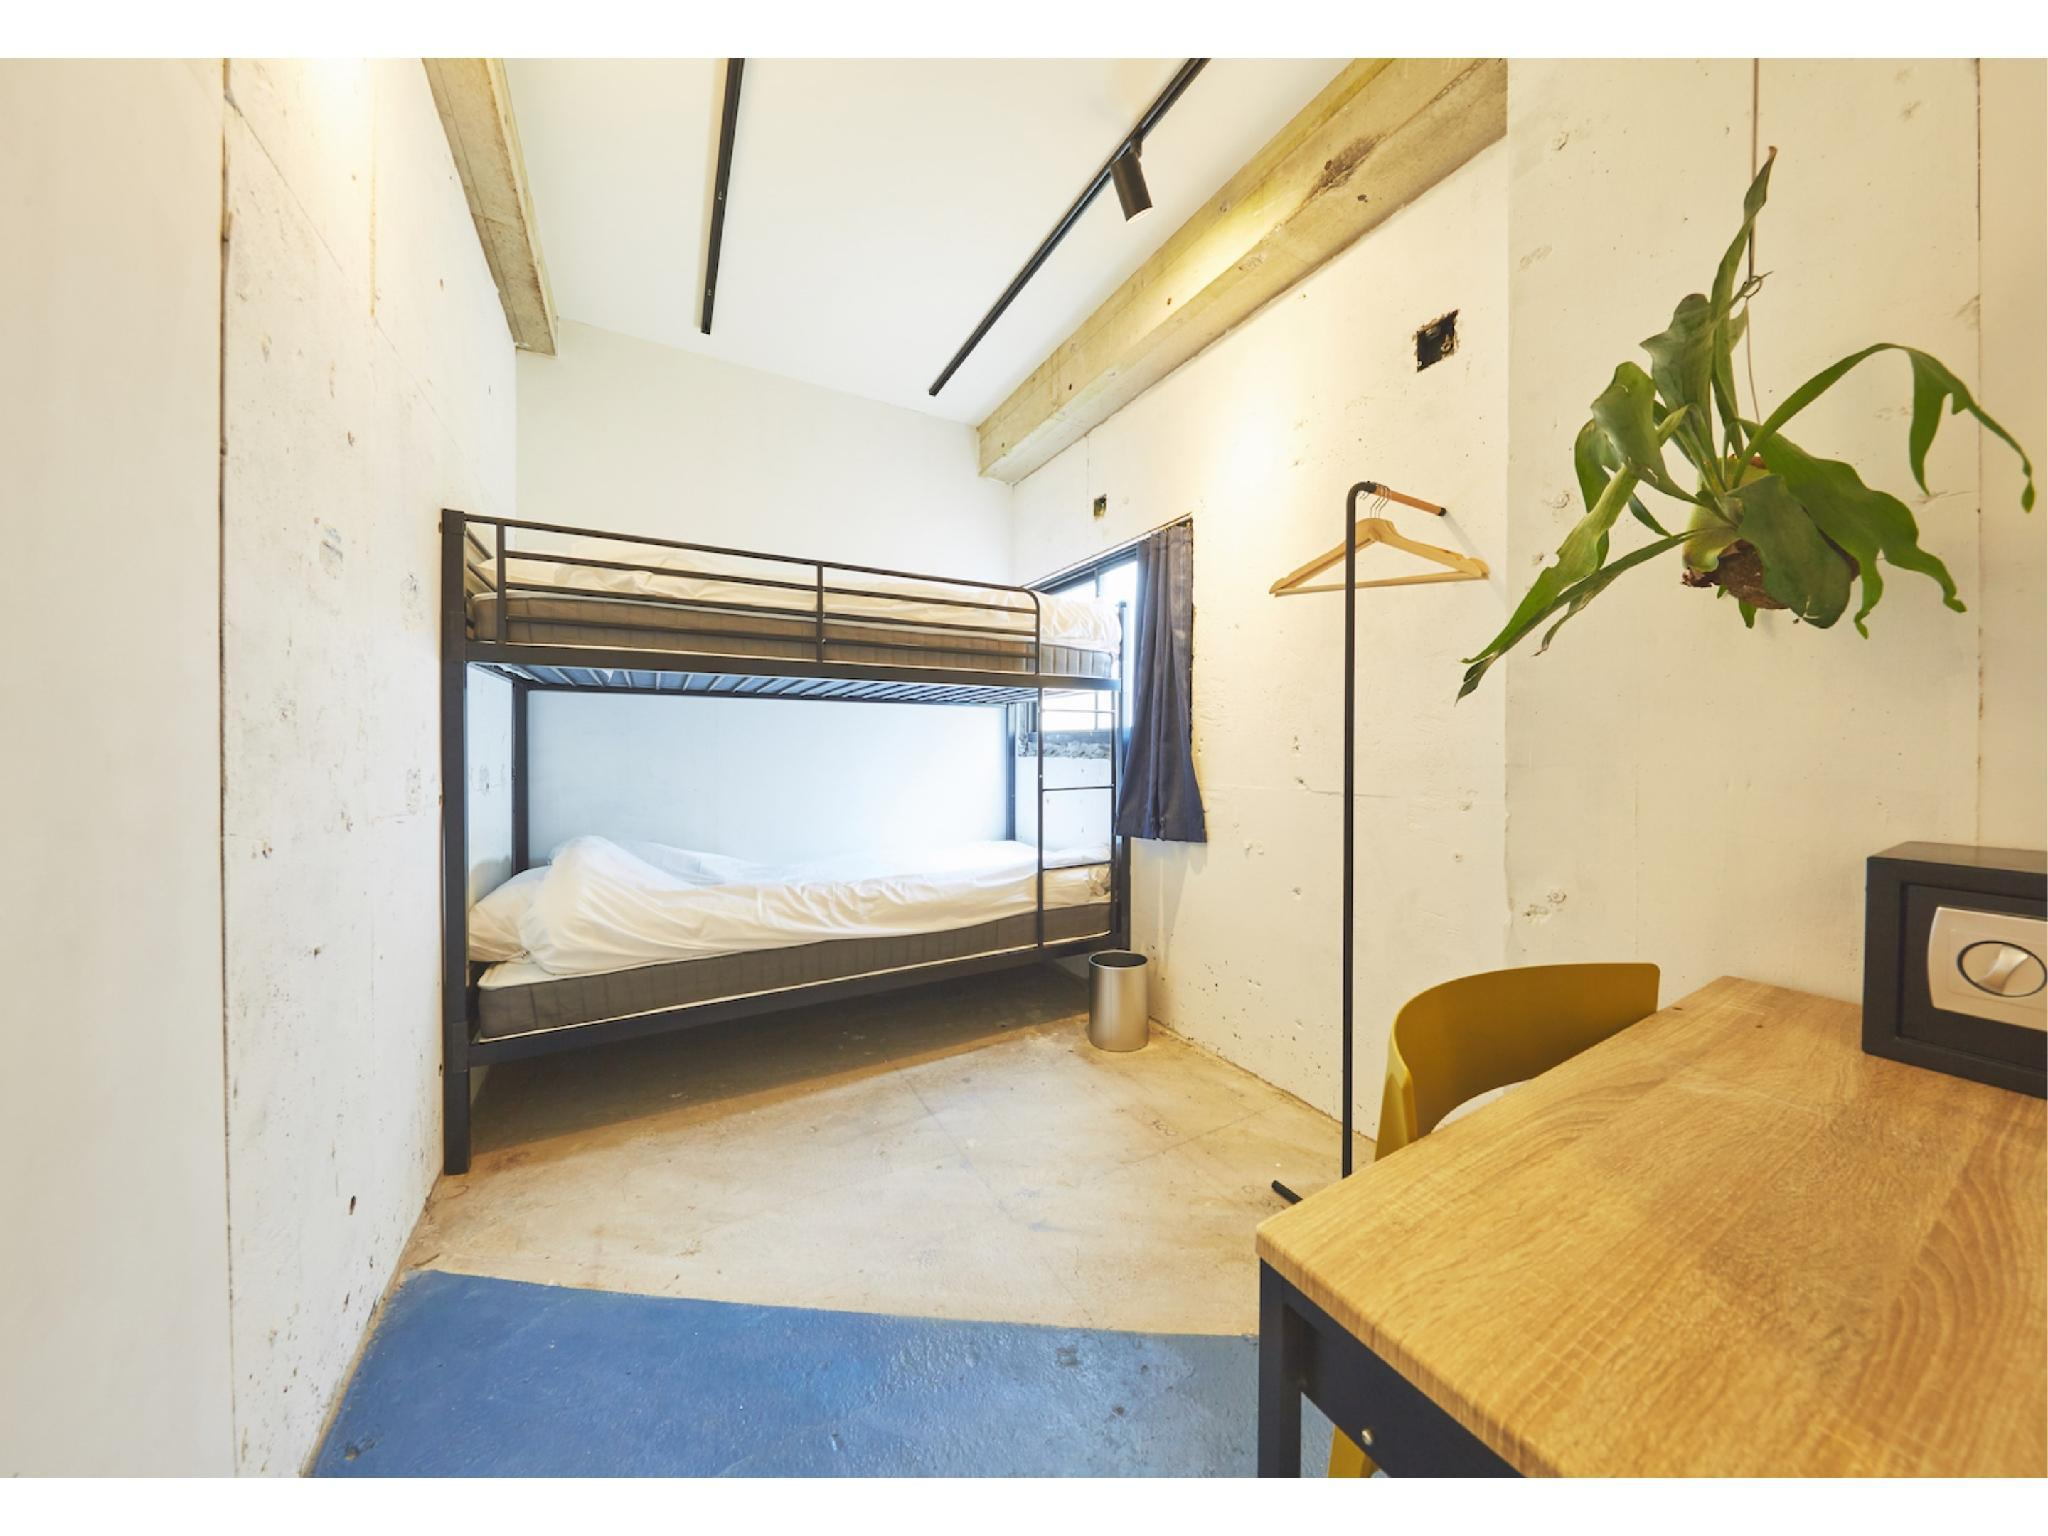 BUNK|8平米 (Bunk Bed Room)